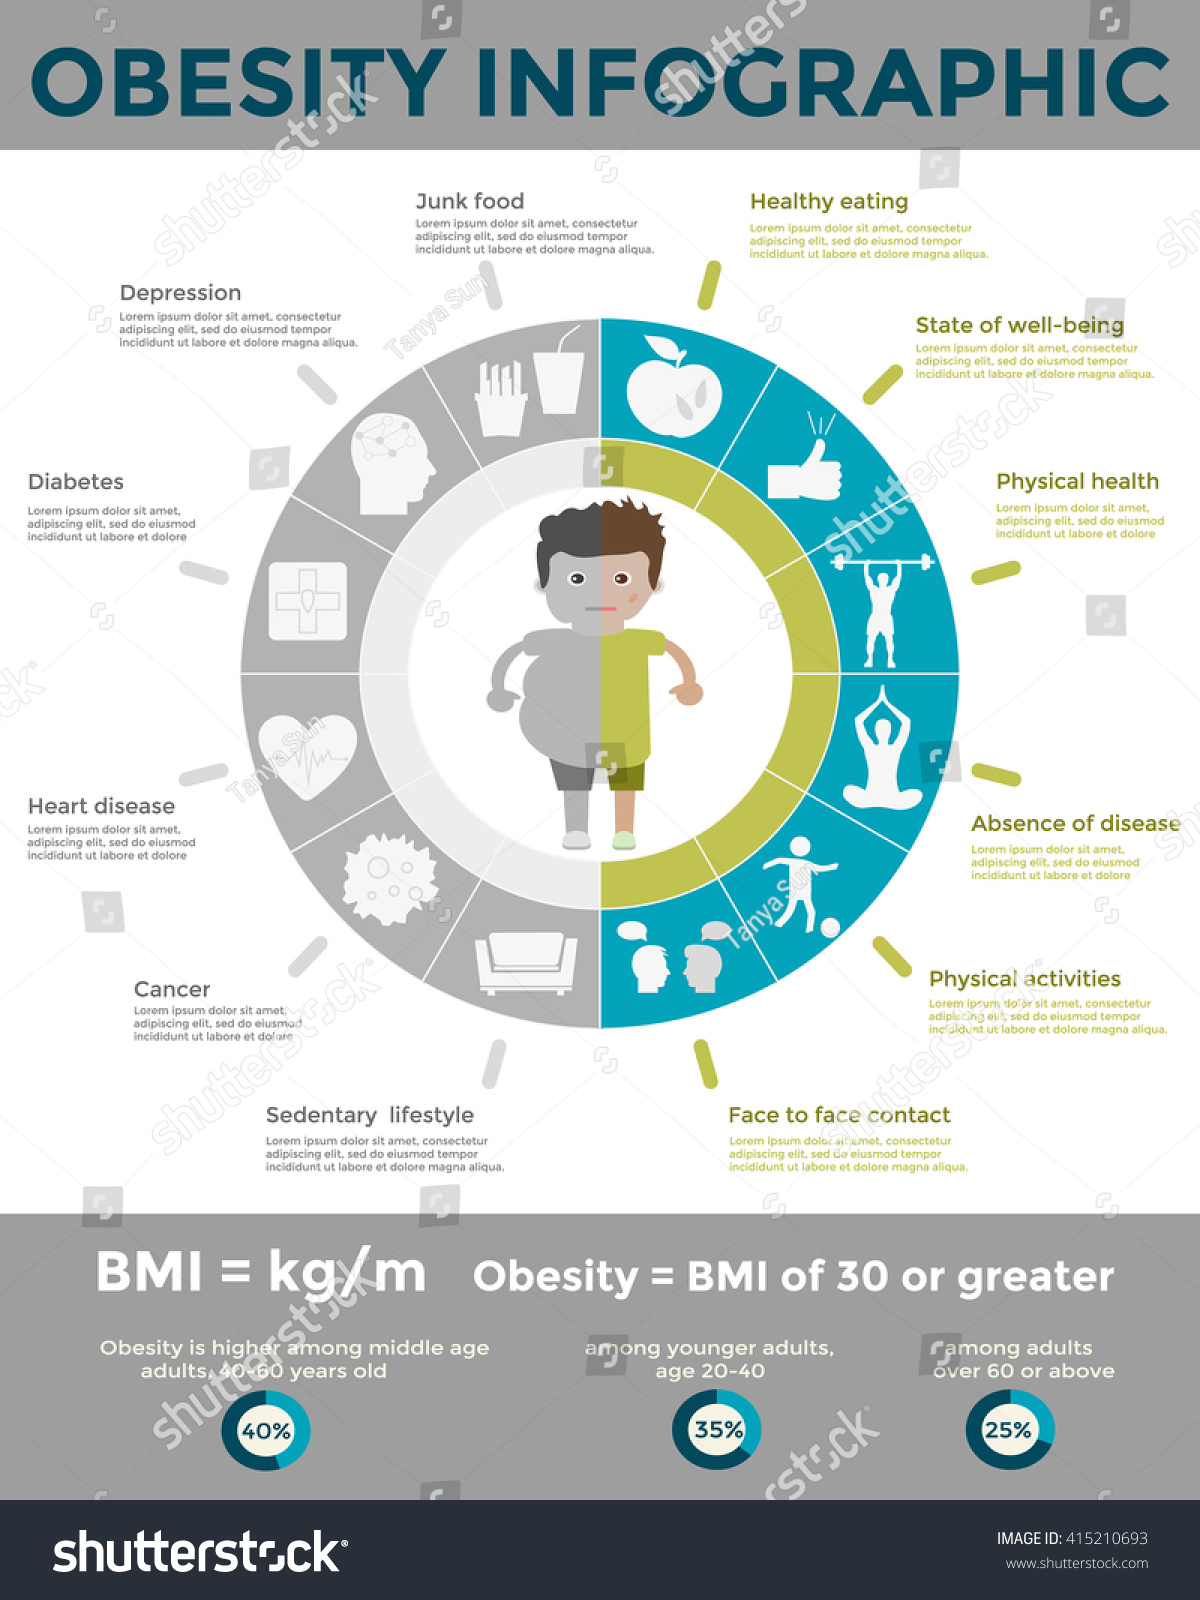 sedentary lifestyle and obesity The risks of a sedentary lifestyle: your noggin's hippocampus, or memory center, deteriorates as you age, but the side effects of being sedentary (obesity.